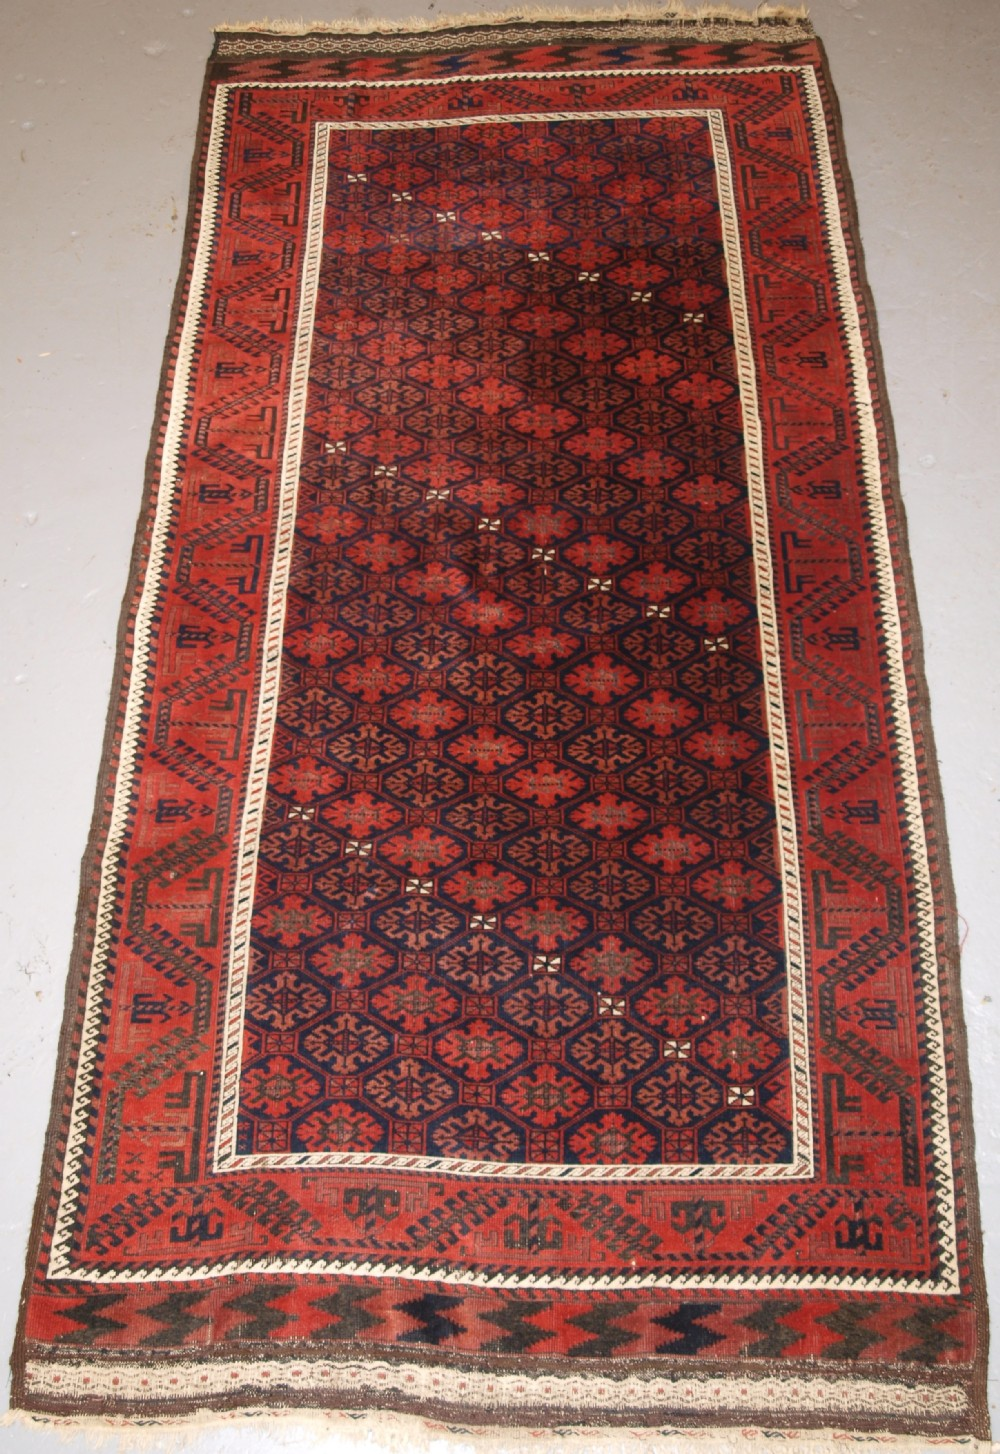 antique baluch rug khorassan region eastern persia snowflake lattice design 4th quarter 19th century